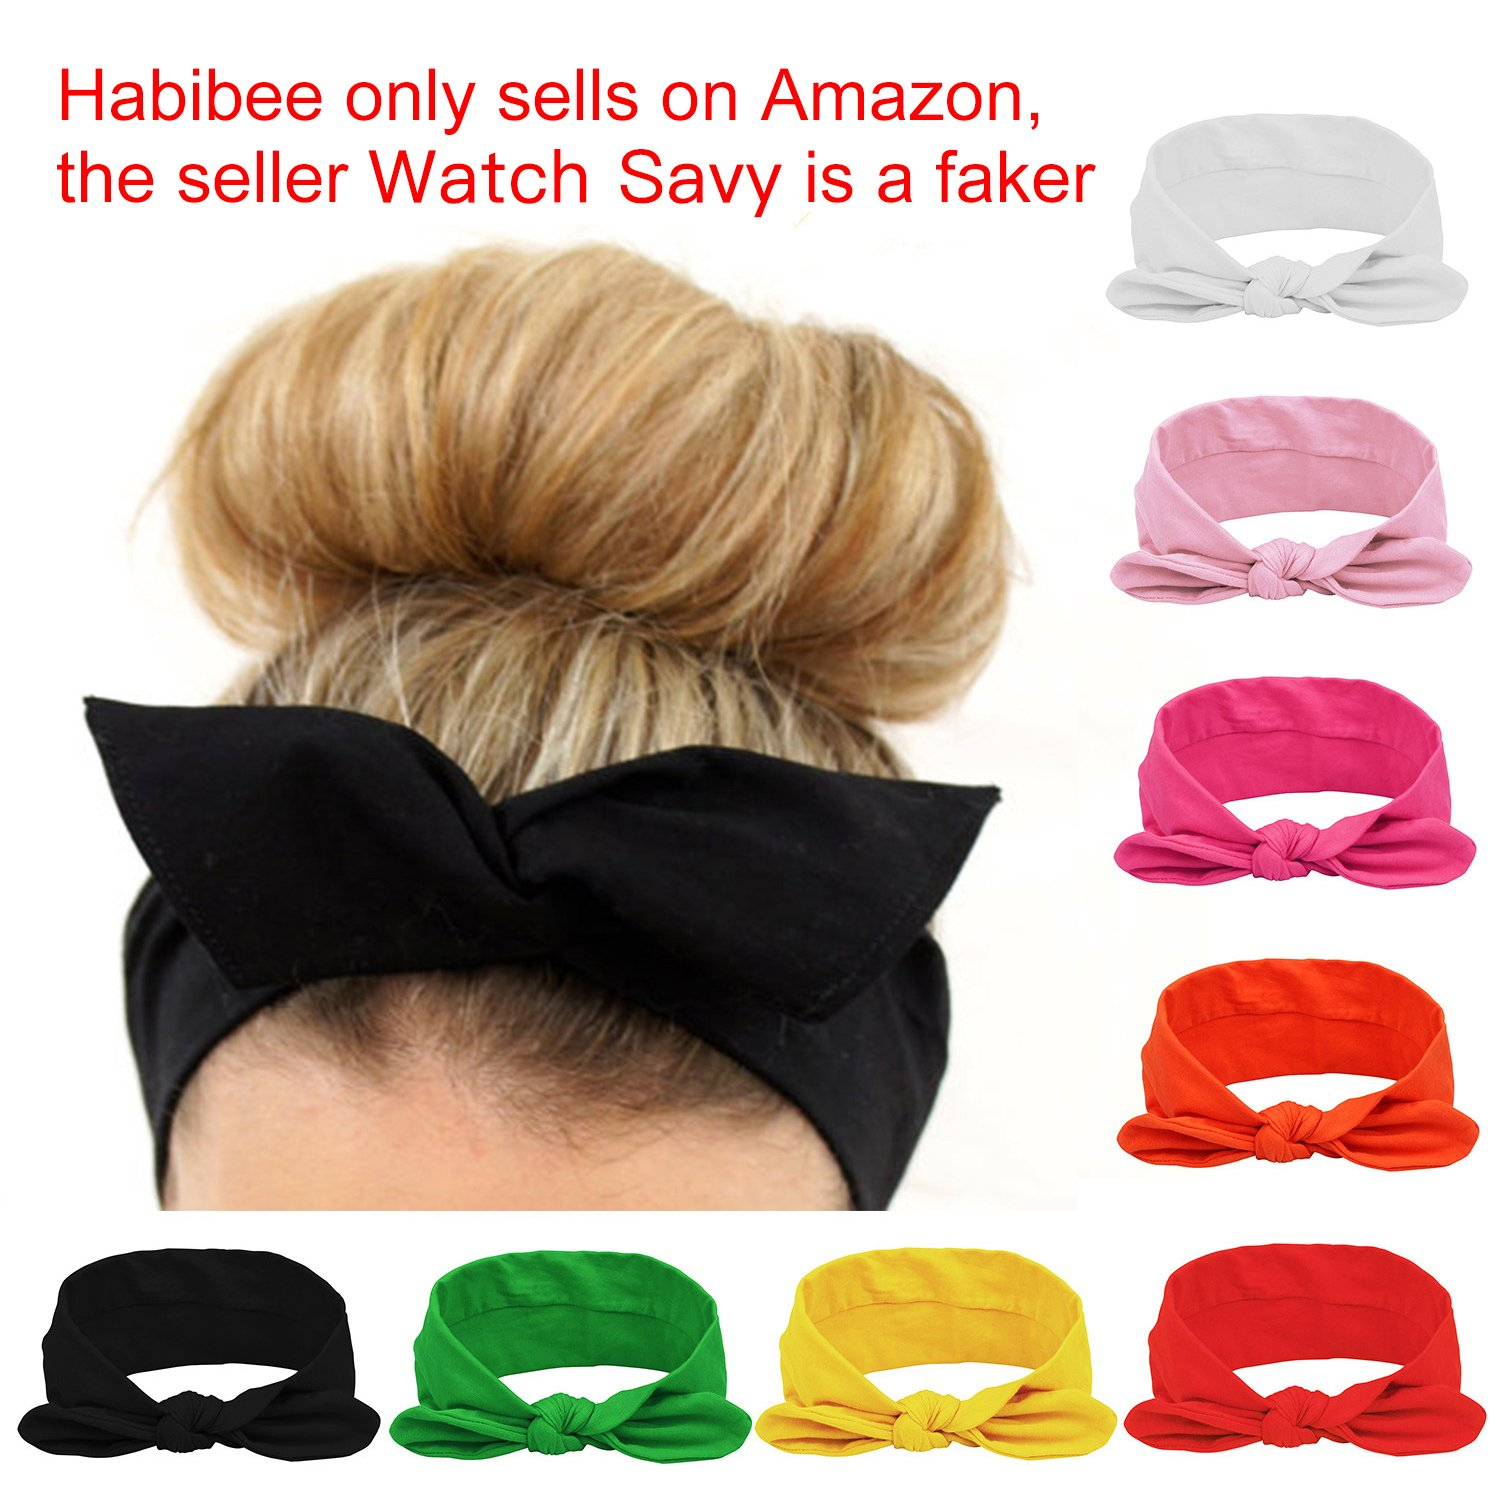 Habibee Women Headbands Turban Headwraps Hair Band Bows Accessories for Fashion Or Sport (Solid Color 8pcs) by habibee